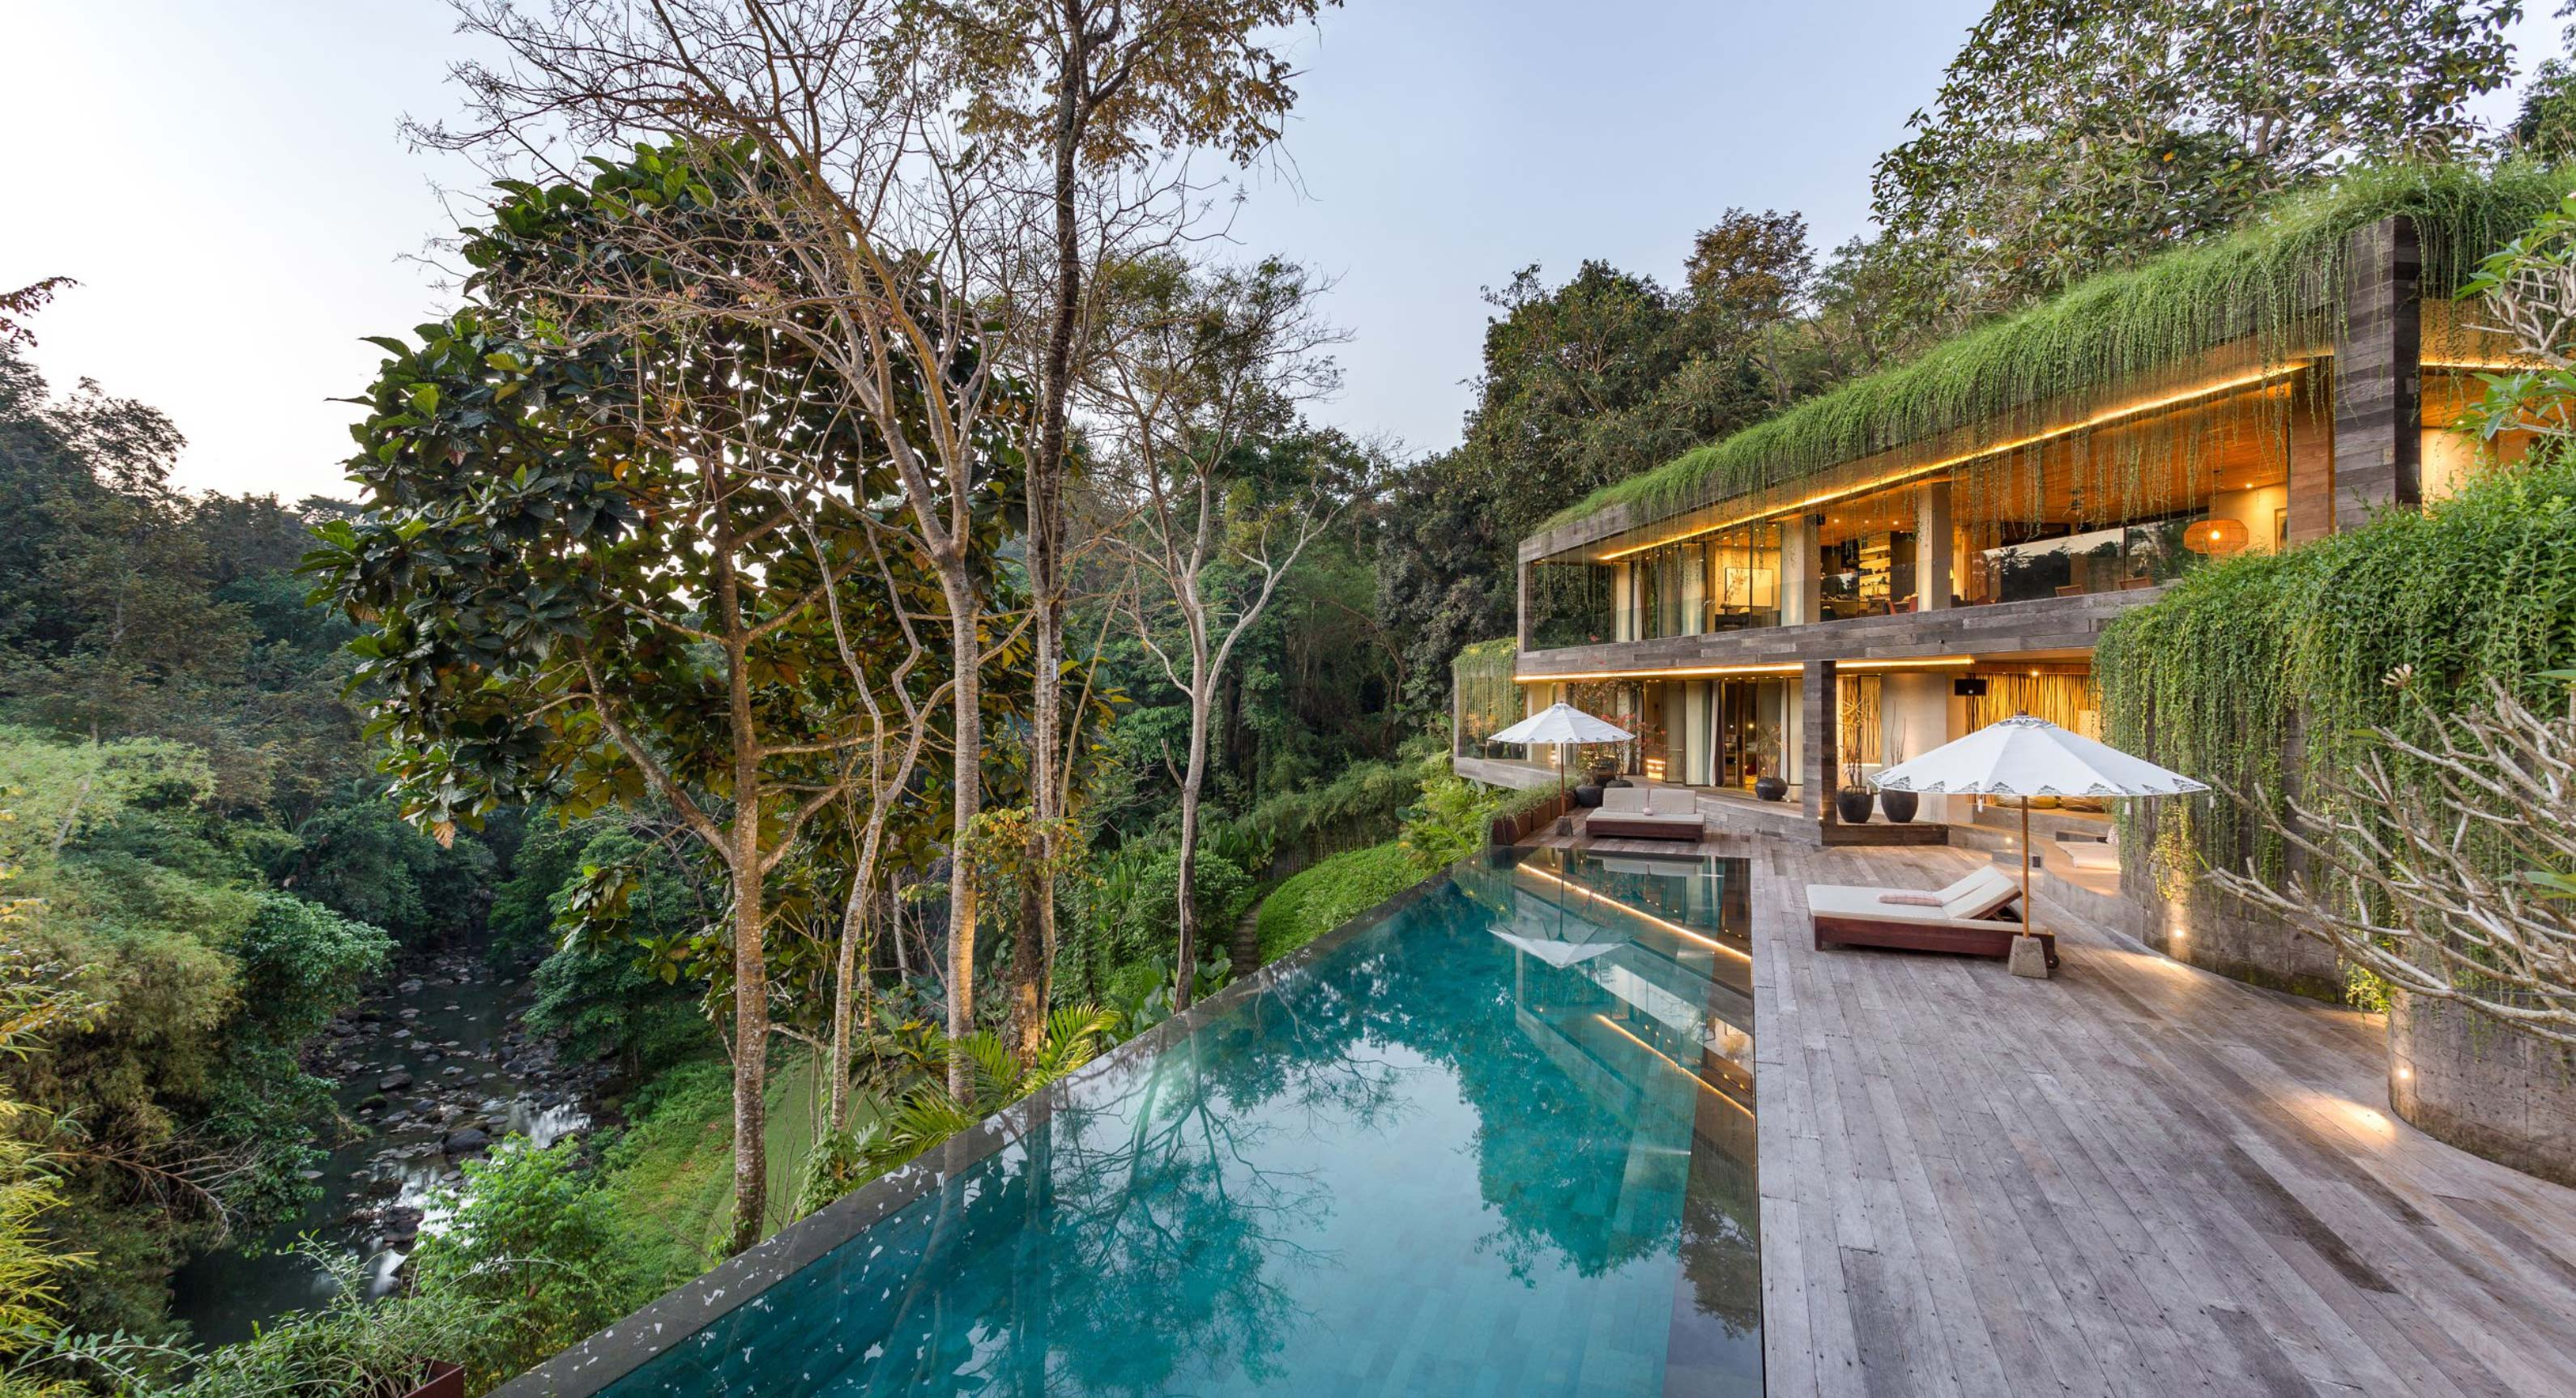 A Mountainside Oasis: The Chameleon Villa In Bali